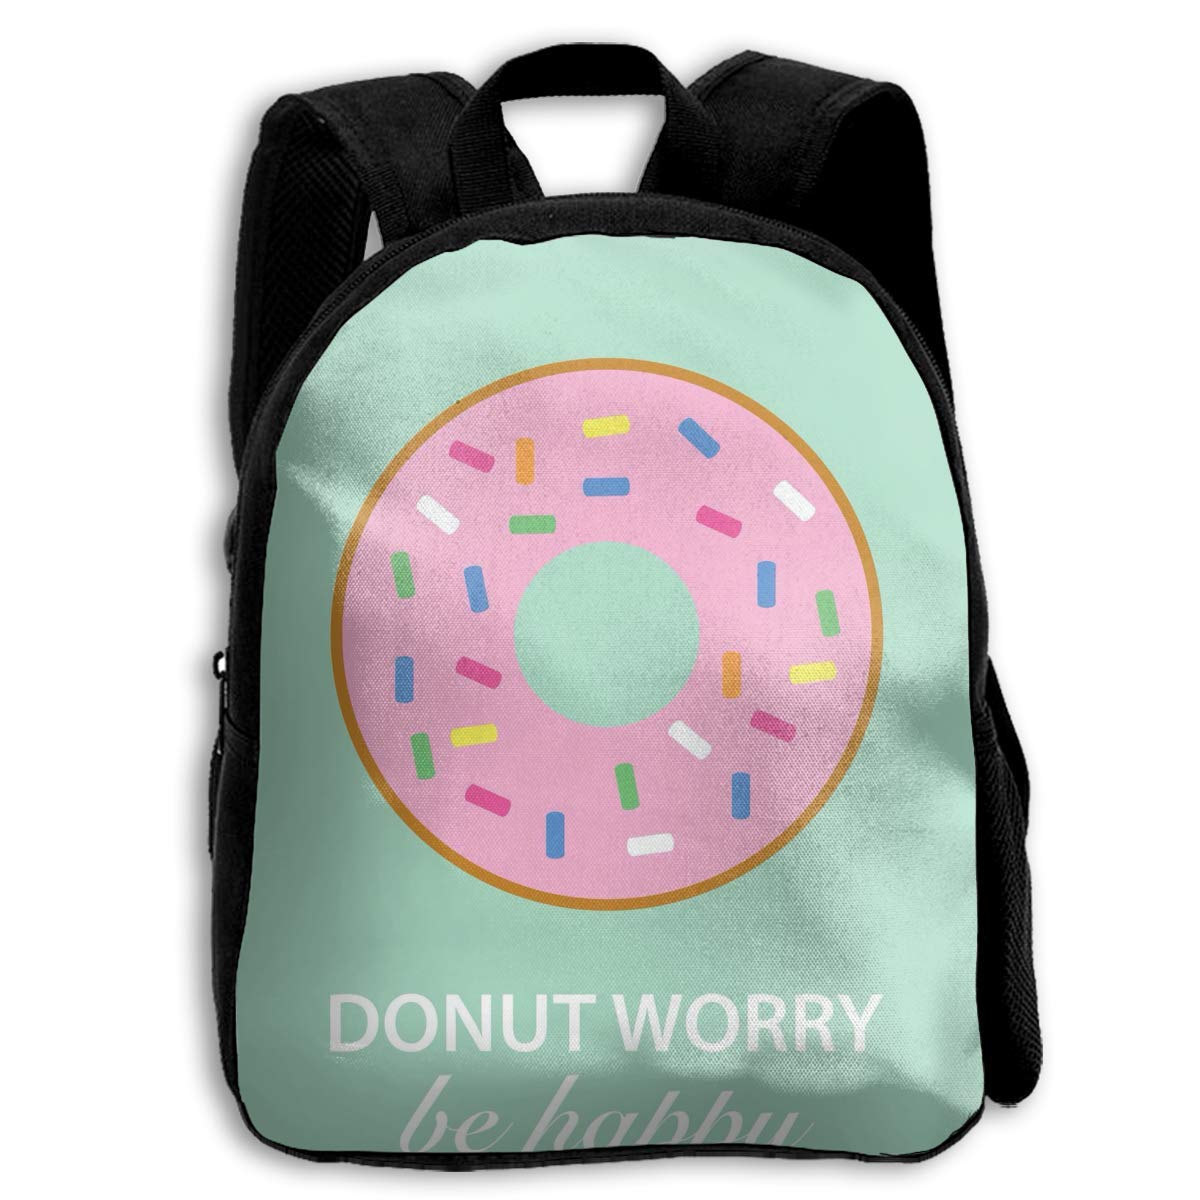 sd4r5y3hg Kids Toddler Don't Worry Be Happy Donut Pre School Travel Camping Backpack ZAZDKJE9ODU4MPXINBDL-0-0